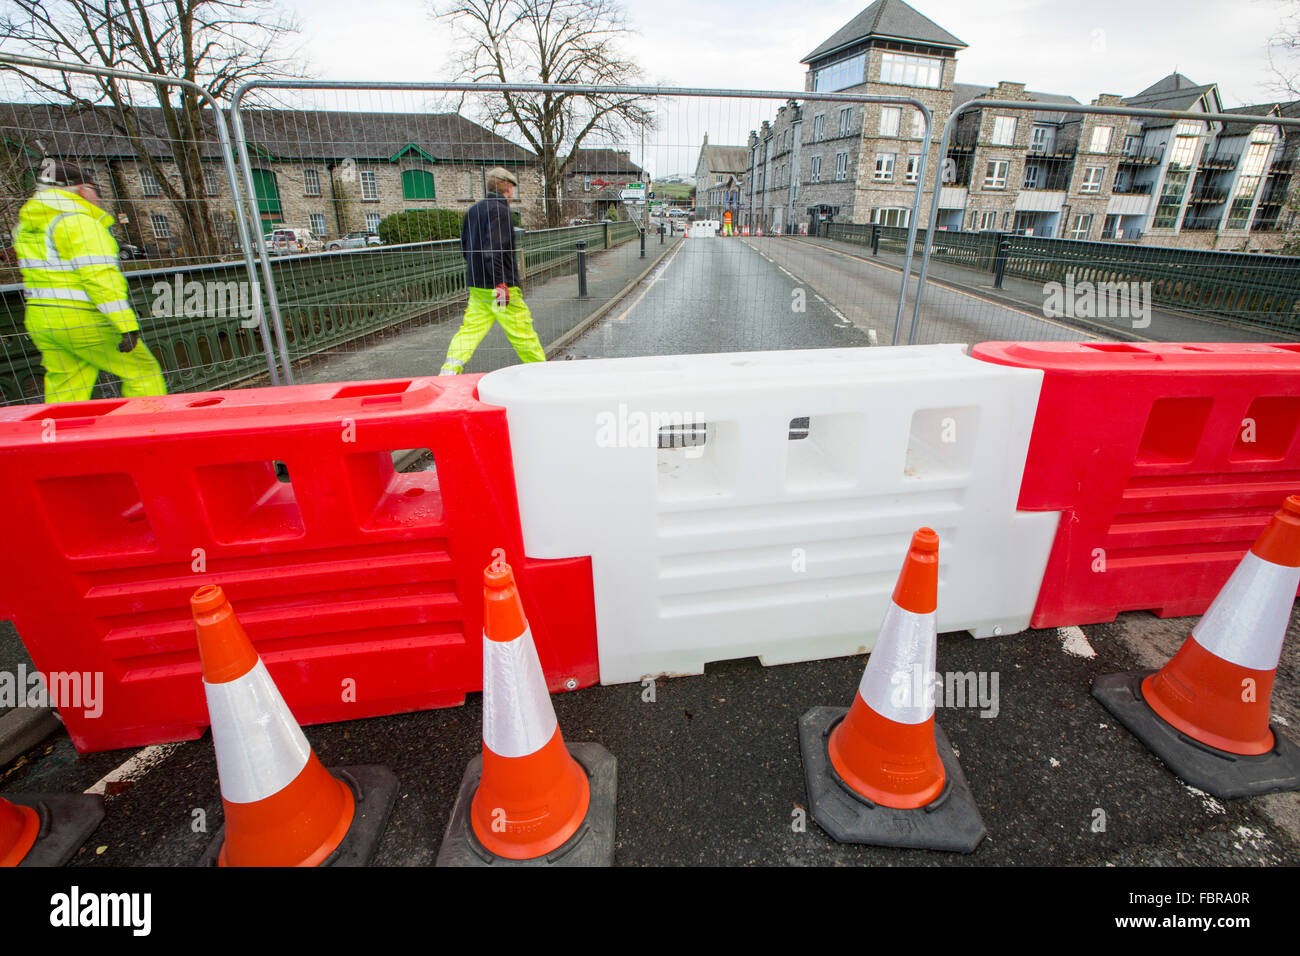 Storm Desmond resulted in over thirty bridges being destroyed or damaged in Cumbria, disrupting transport. In Kendal - Stock Image